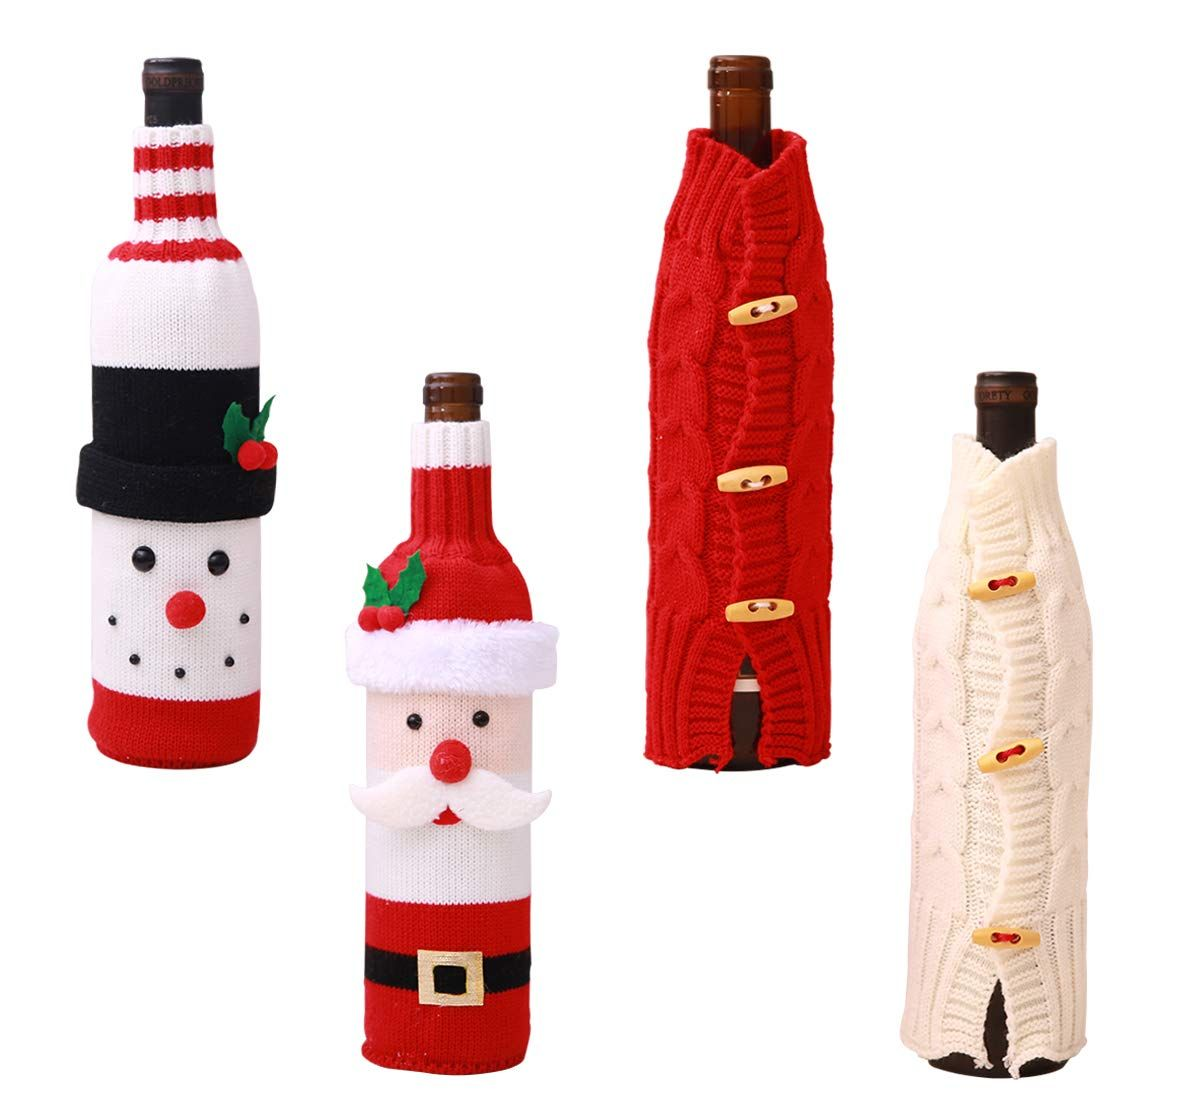 Christmas Wine Bottle Cover Knitted Wine Sweaters Cover Dress Xmas Dinner Table Decorati Christmas Wine Bottles Christmas Wine Bottle Covers Wine Bottle Covers